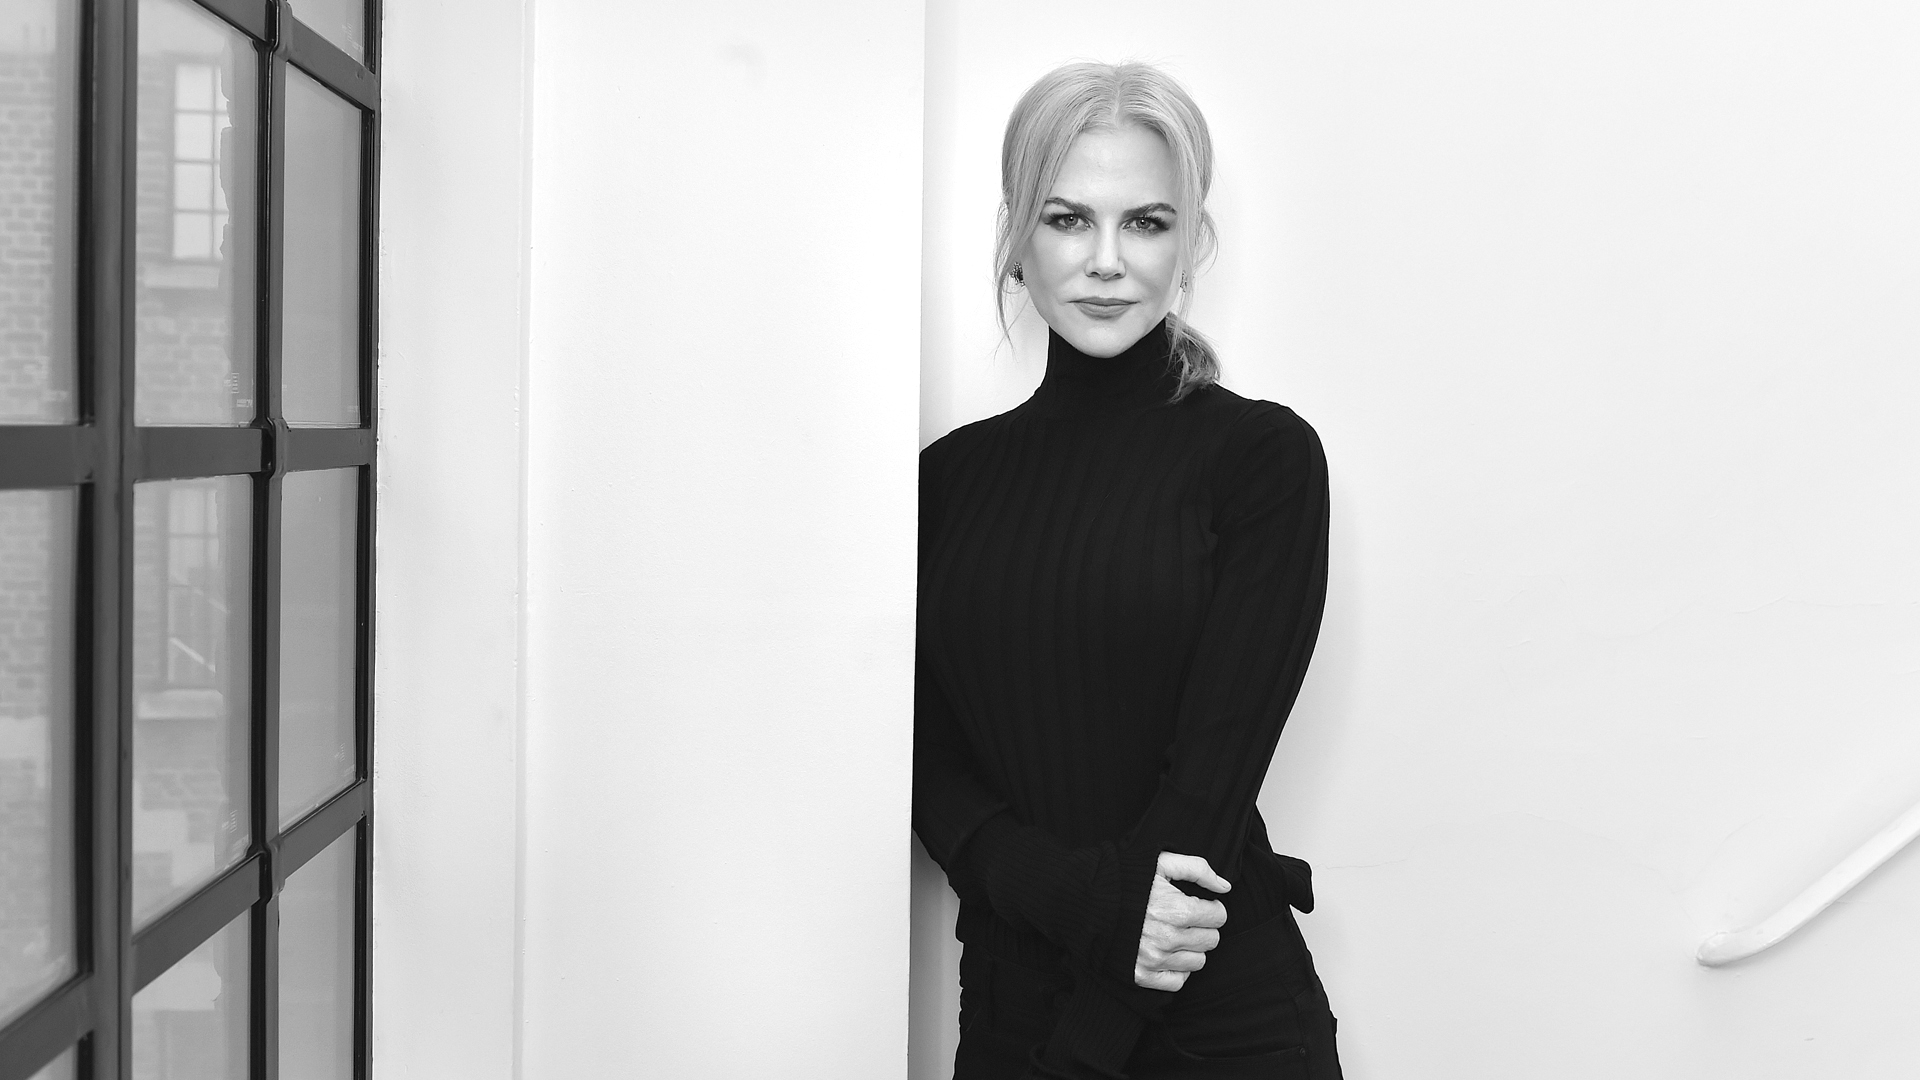 Nicole Kidman at BBC Radio 2, December 2016. Photographer: Sarah Jeynes. © BBC.